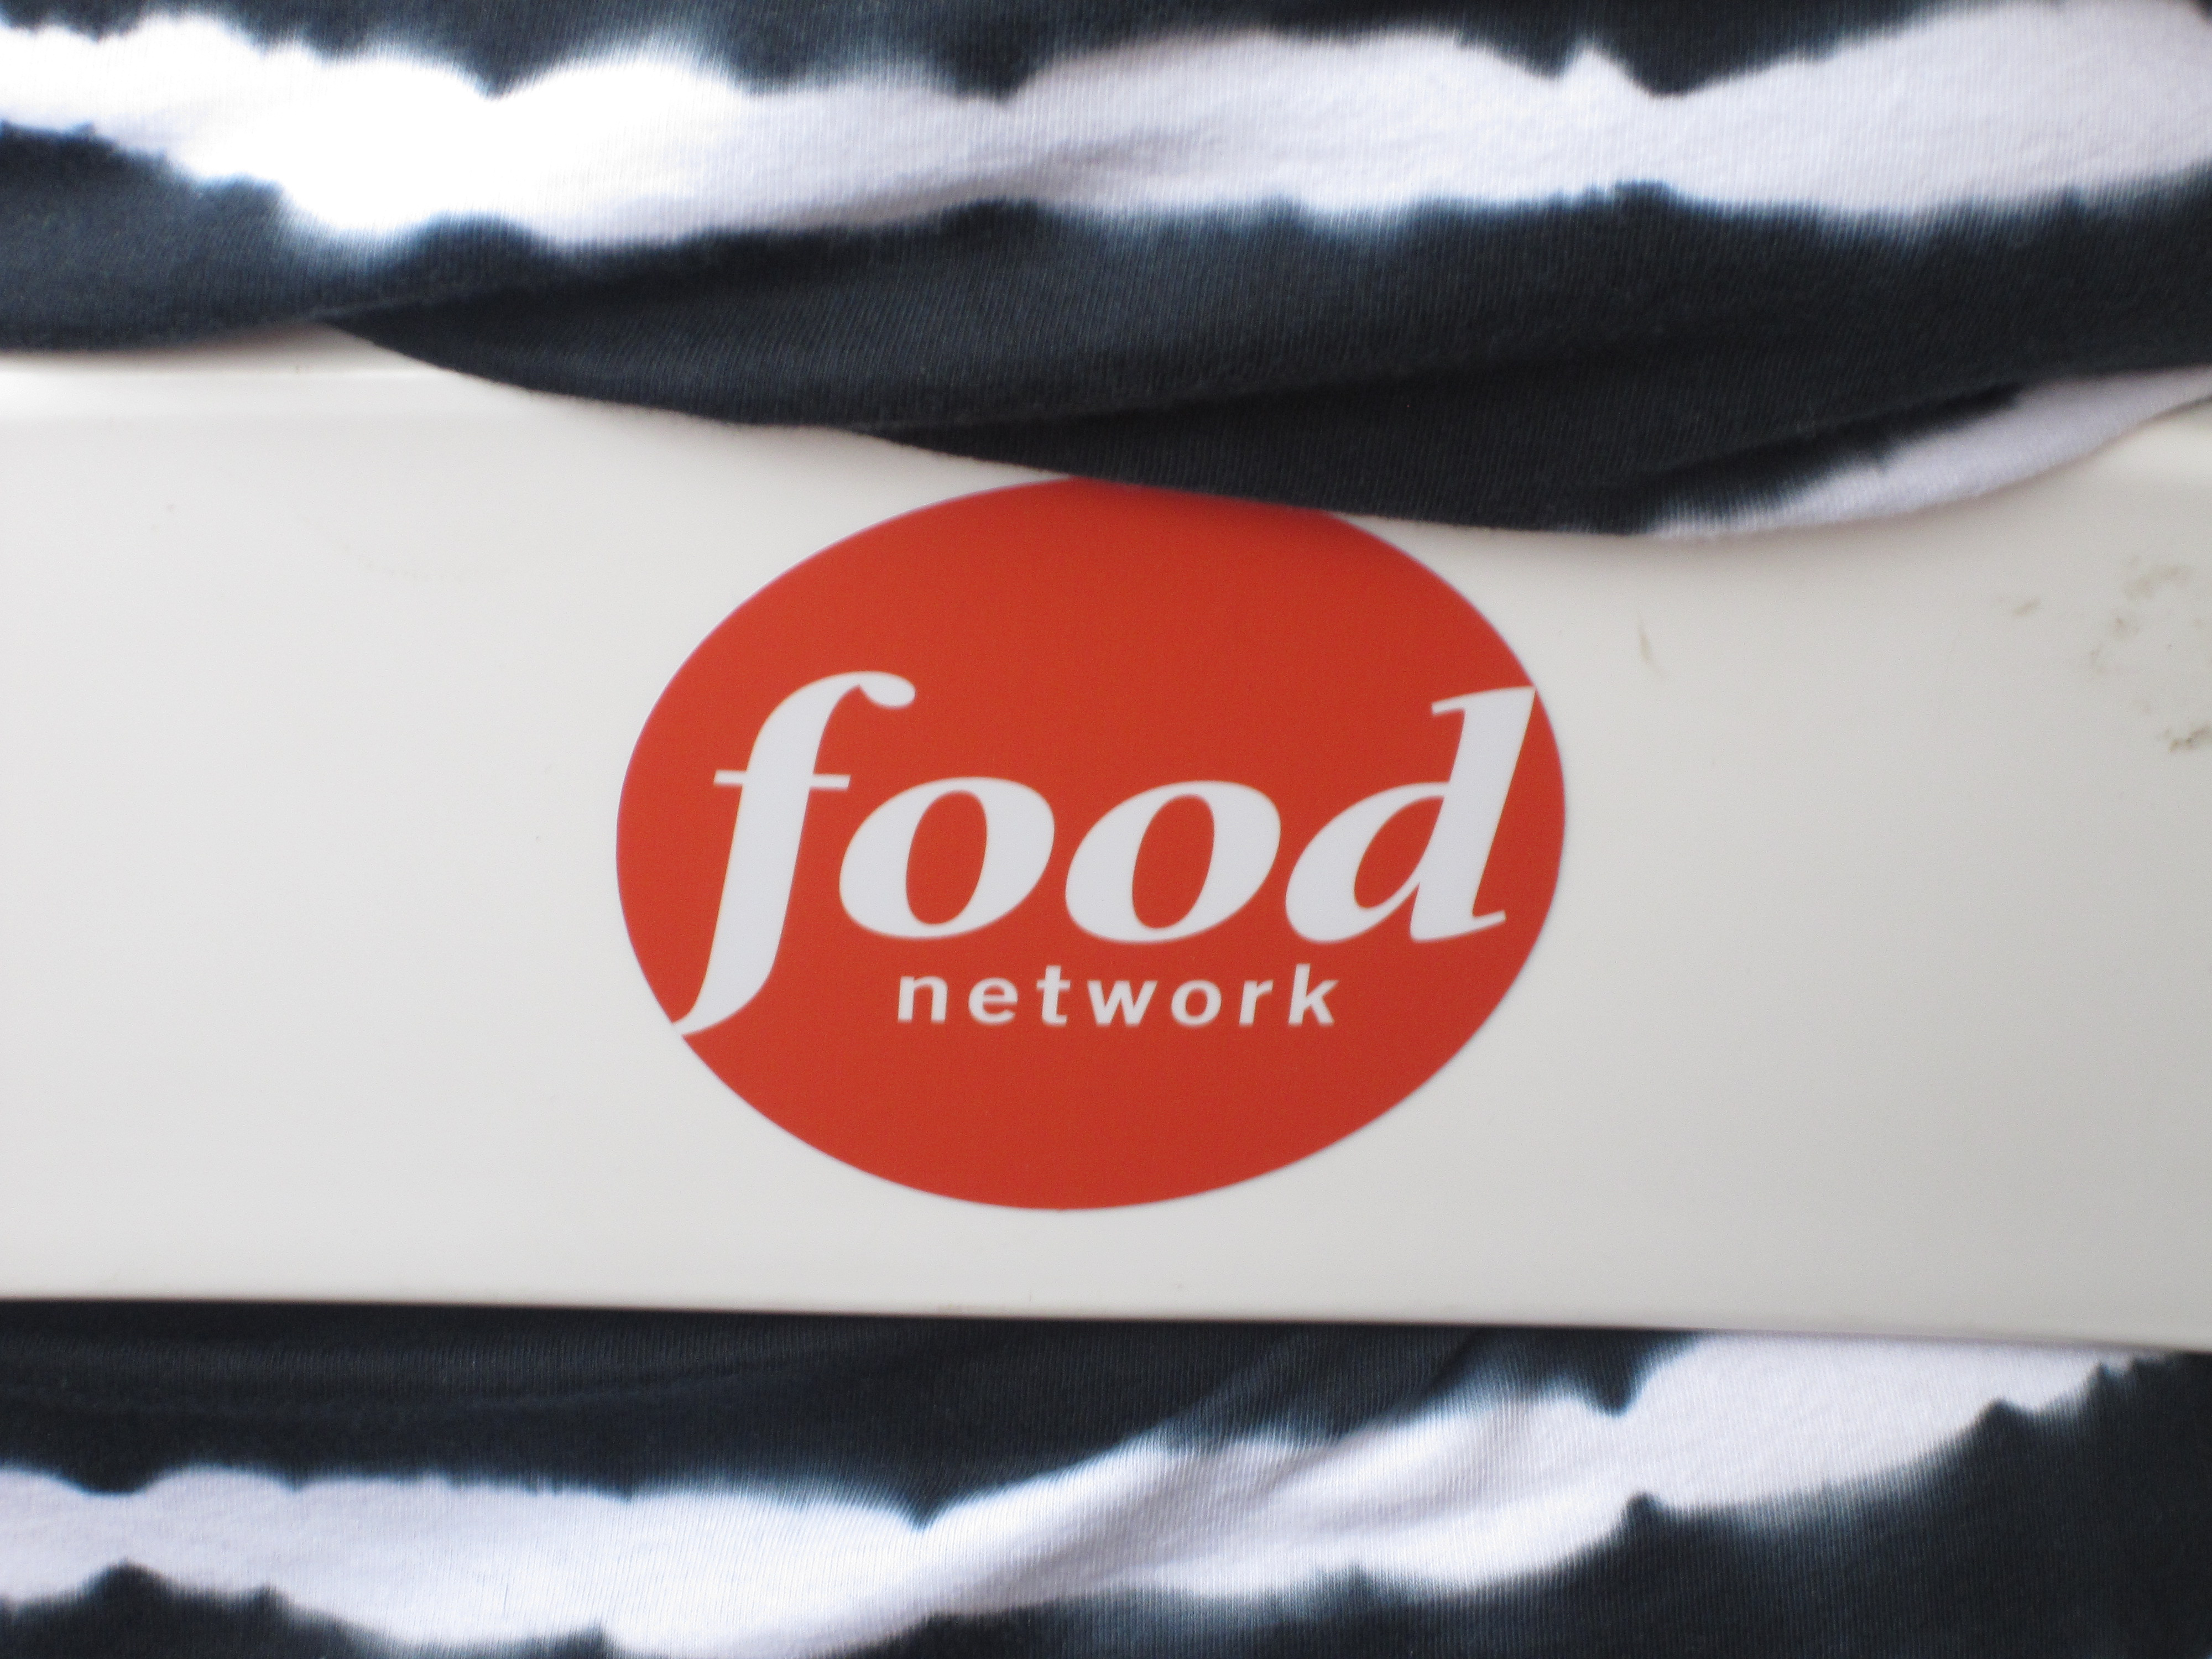 The Food Network logo was everywhere — including the back chairs.